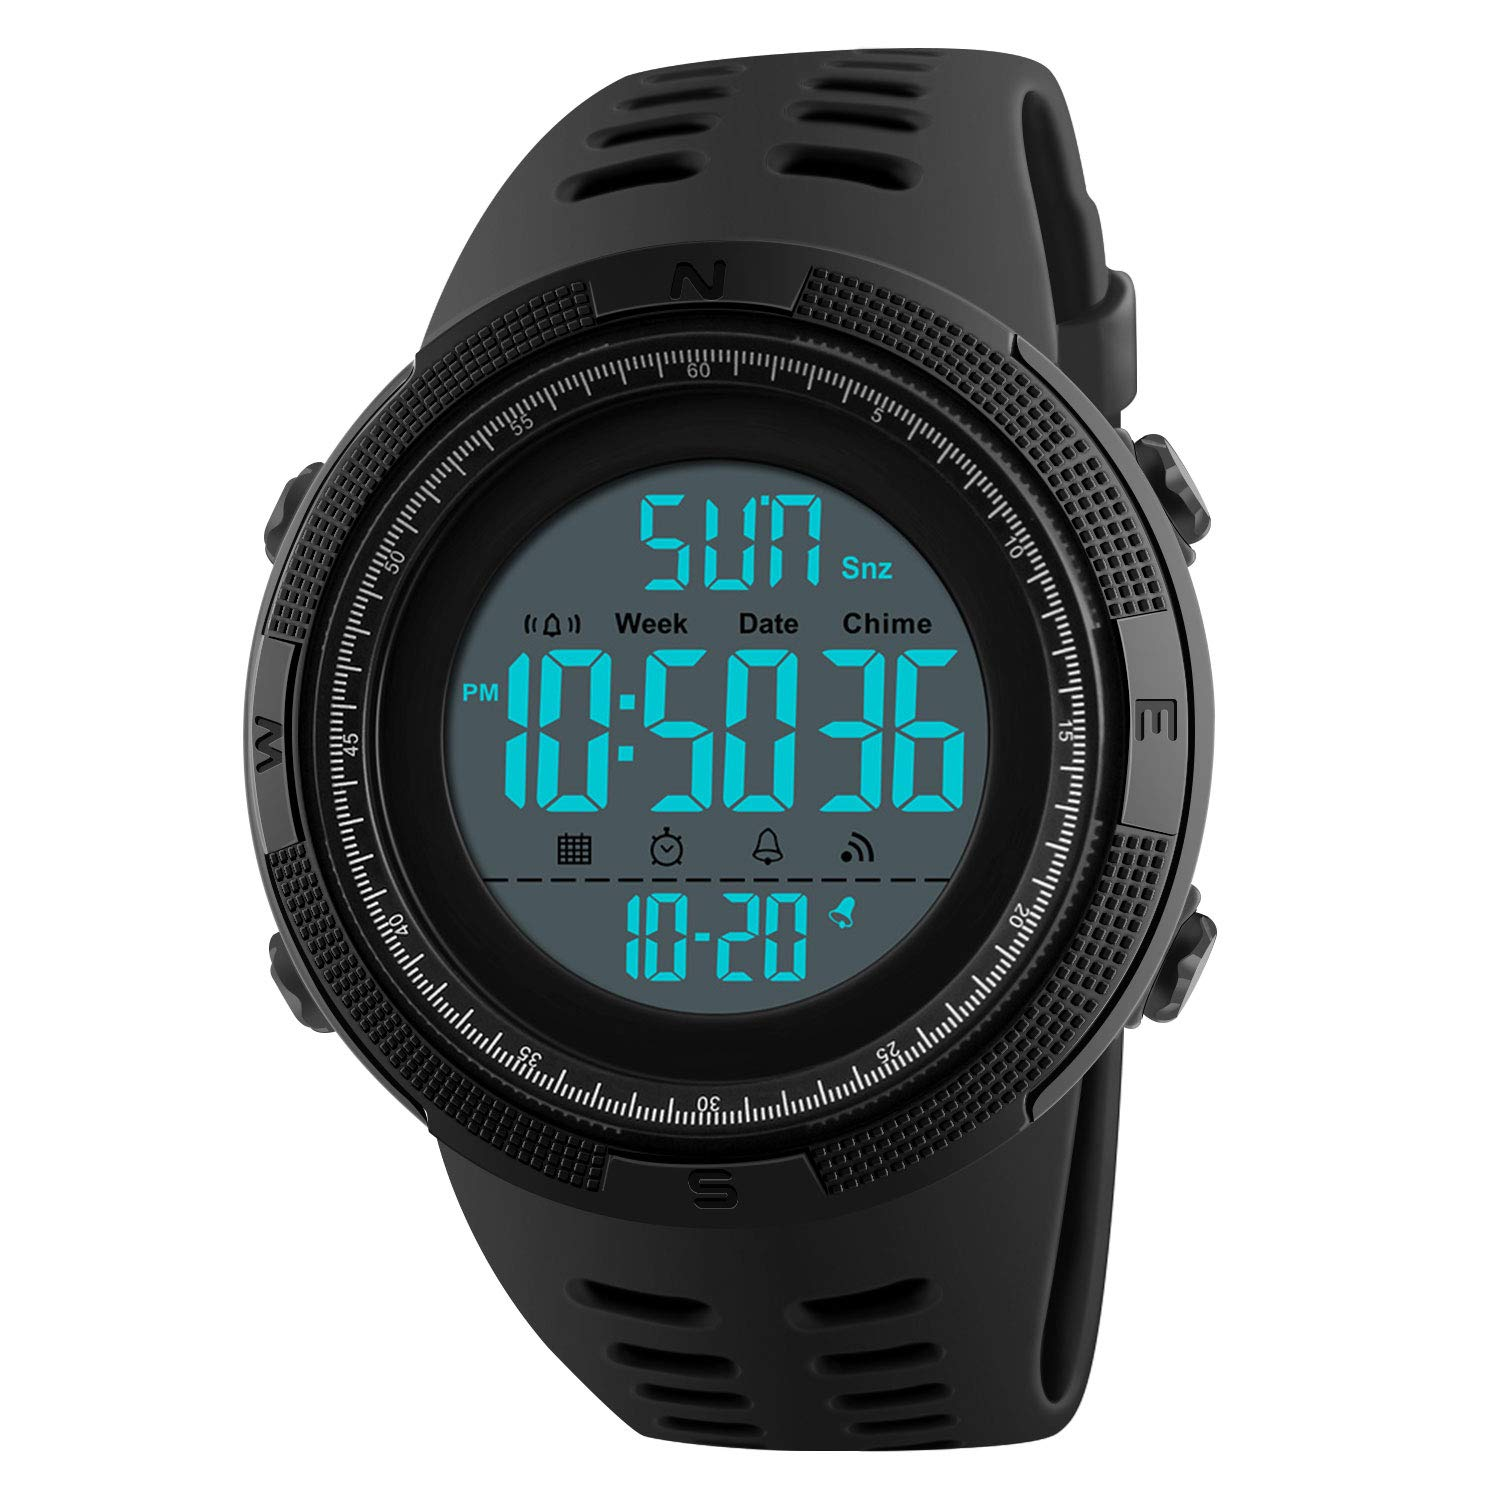 Wrist Watches Running Black Casual Digital Watch Electronic Calendar Waterproof With Fashion Sports Mens Alarm Stopwatch Military w8nNvym0O